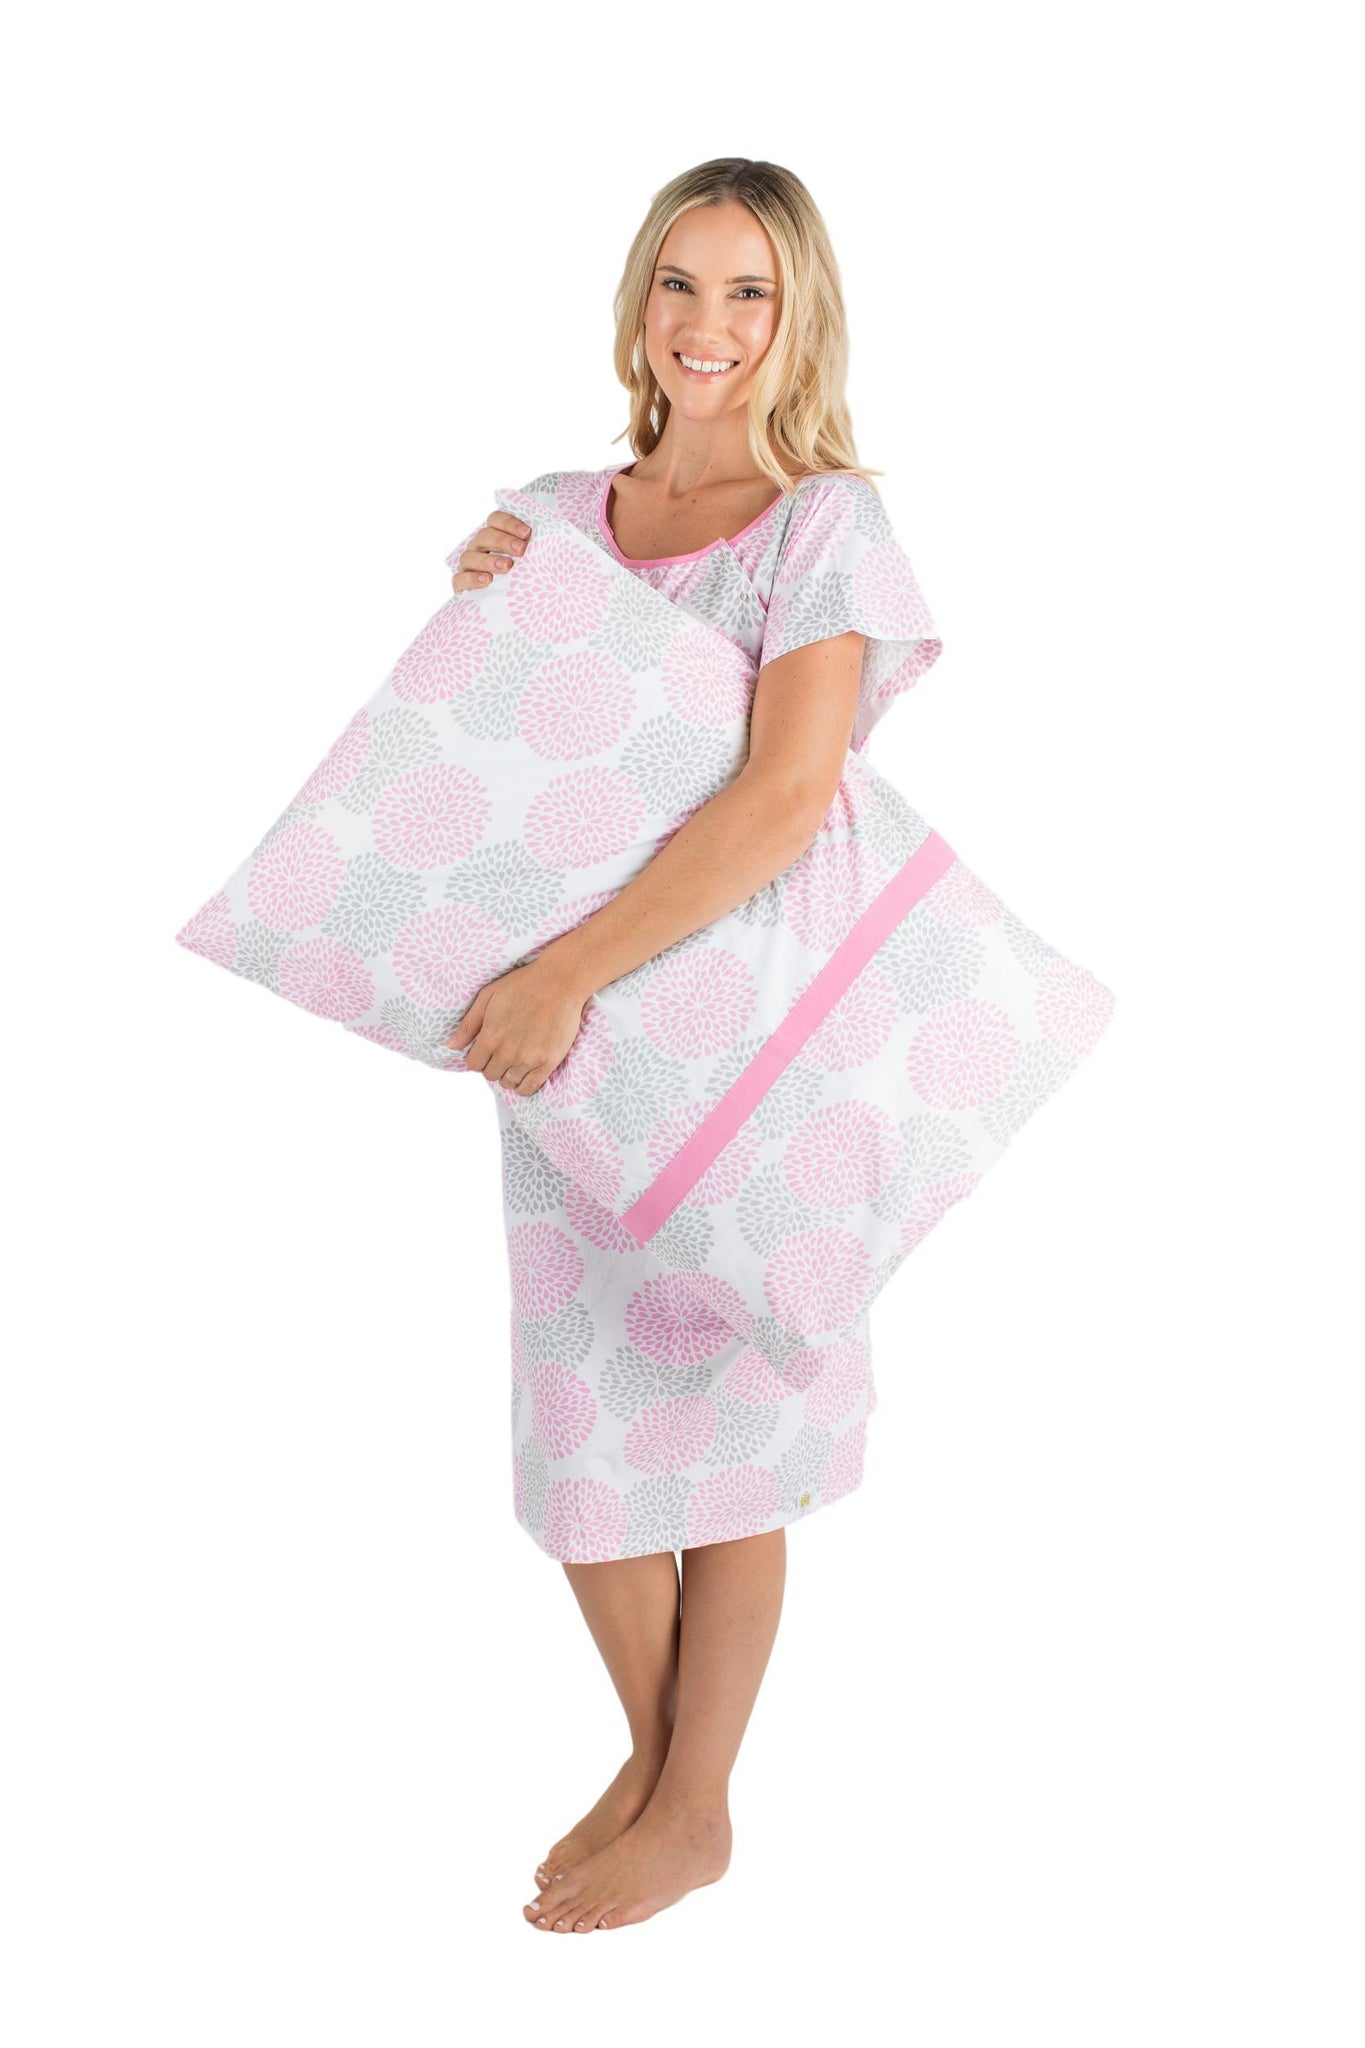 Designer Hospital Gowns for Maternity & Matching Pillowcases – Gownies